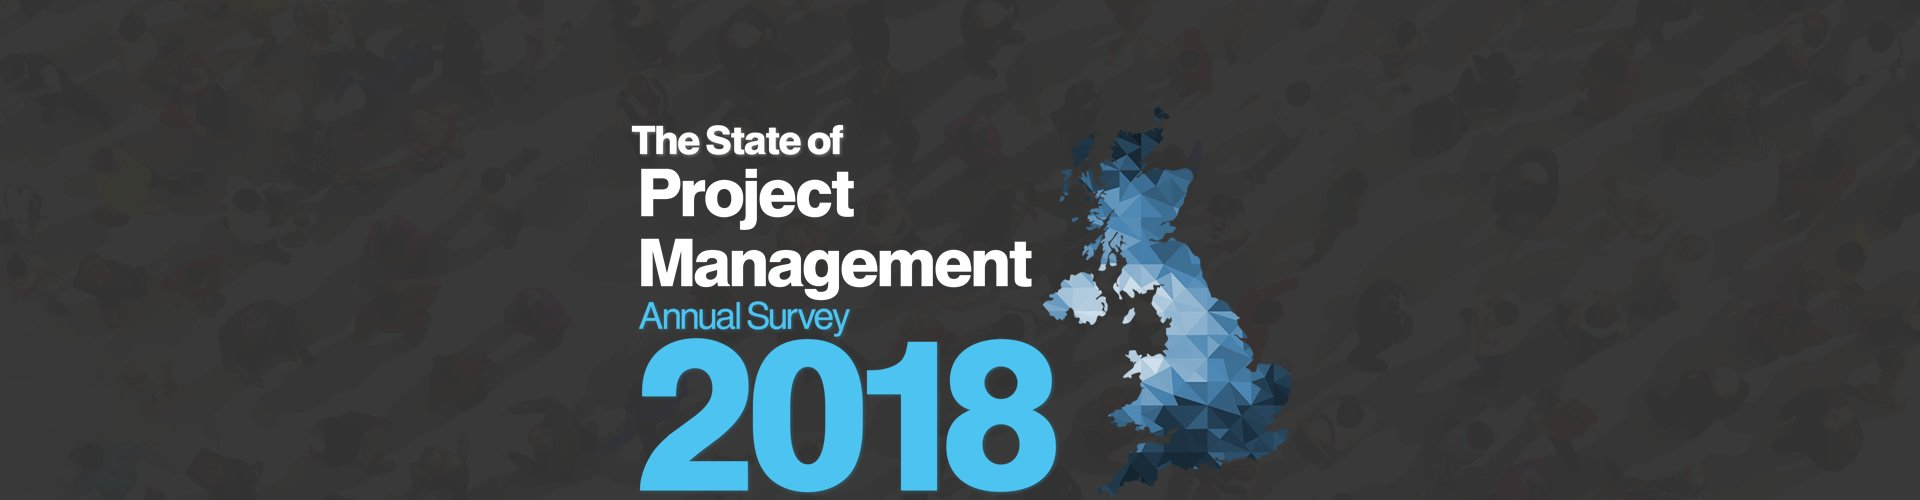 The State of Project Management Annual Survey 2017